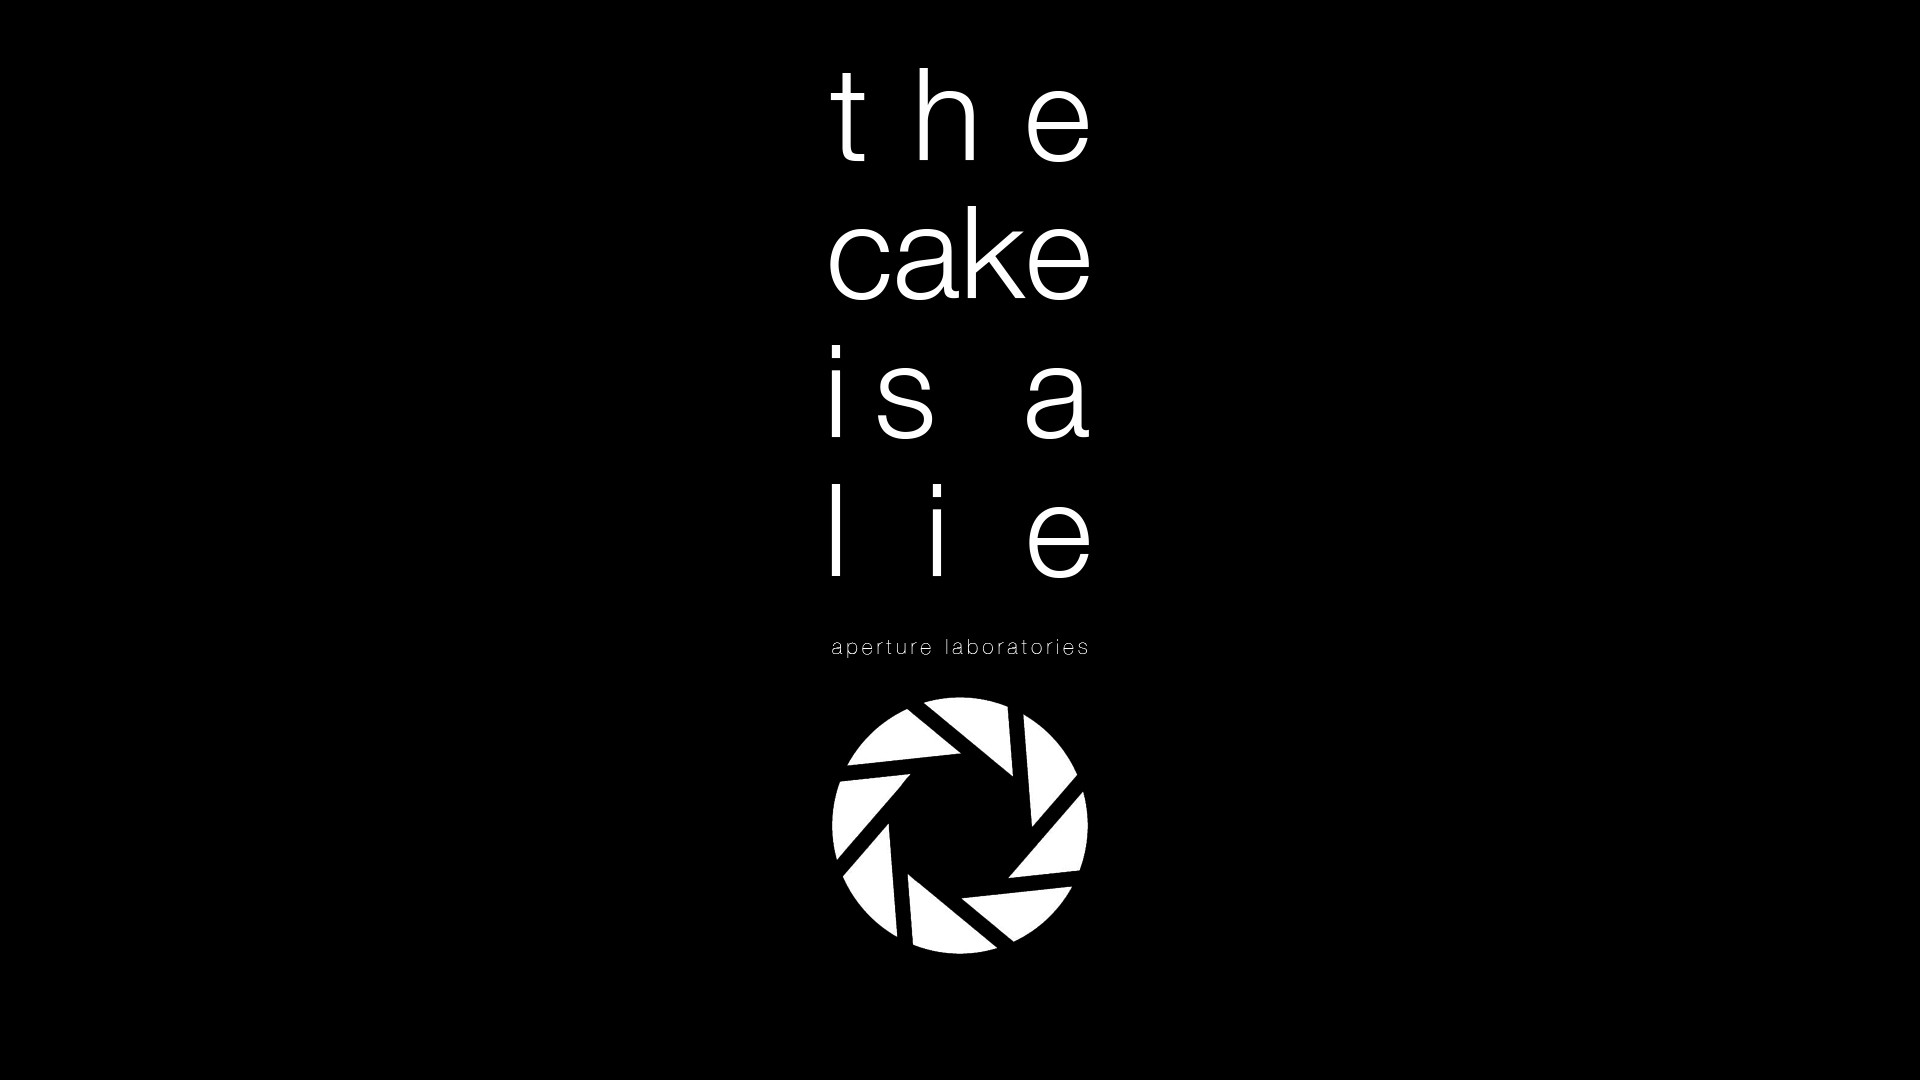 the cake is a lie wallpaper - sf wallpaper